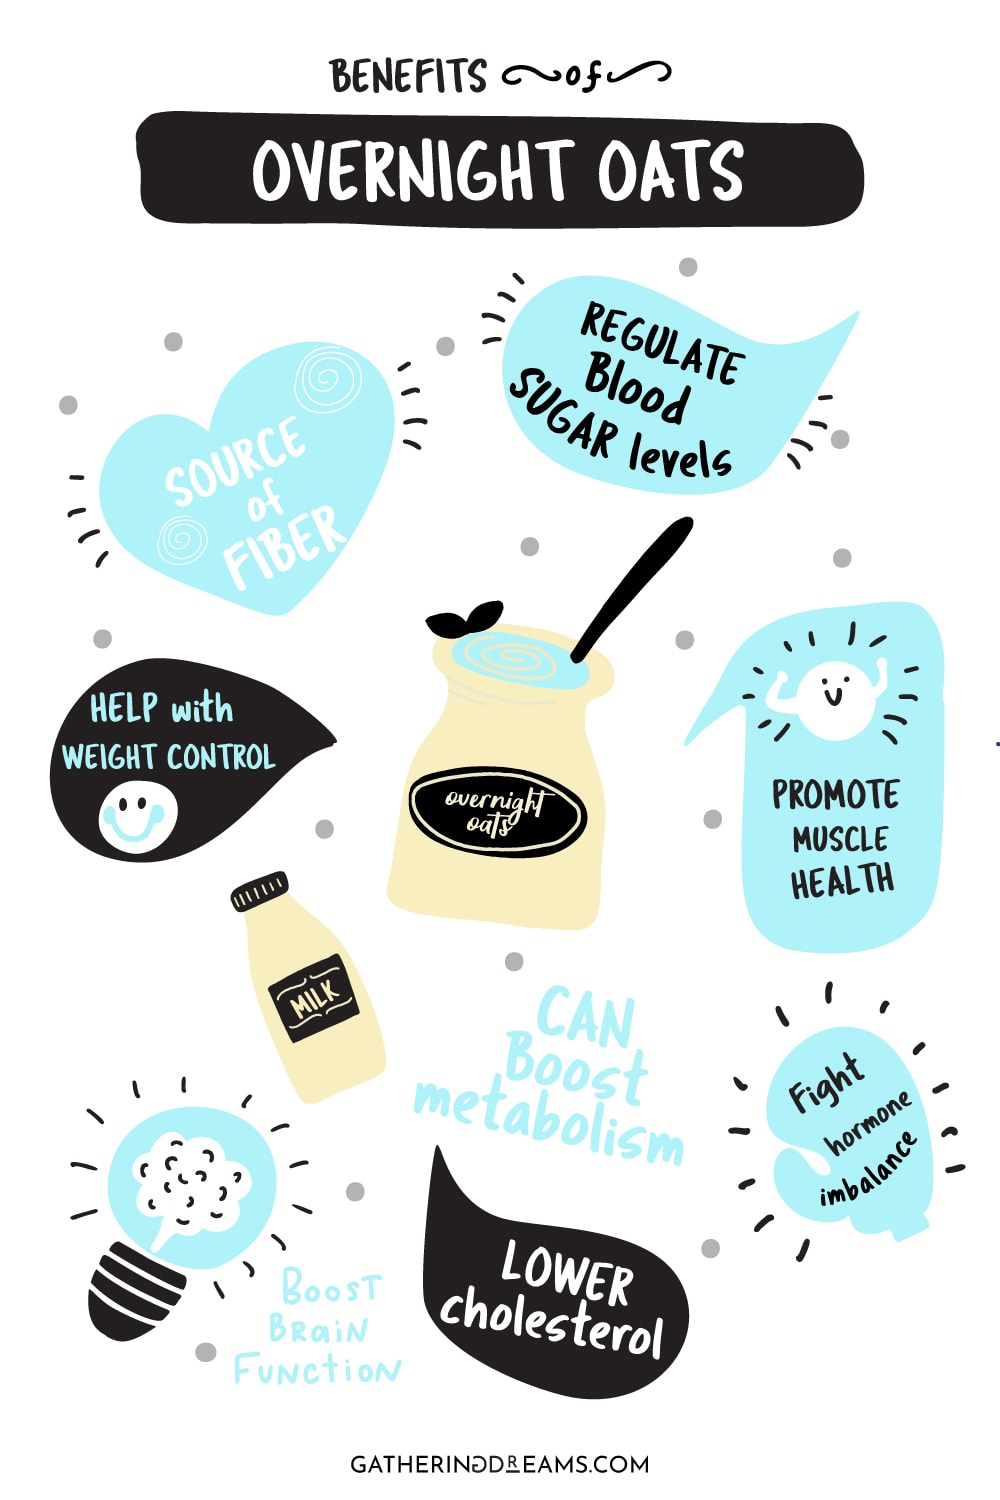 Are overnight oats healthy? An infographic that explains all the benefits of eating overnight oats for breakfast and why they are good fro you